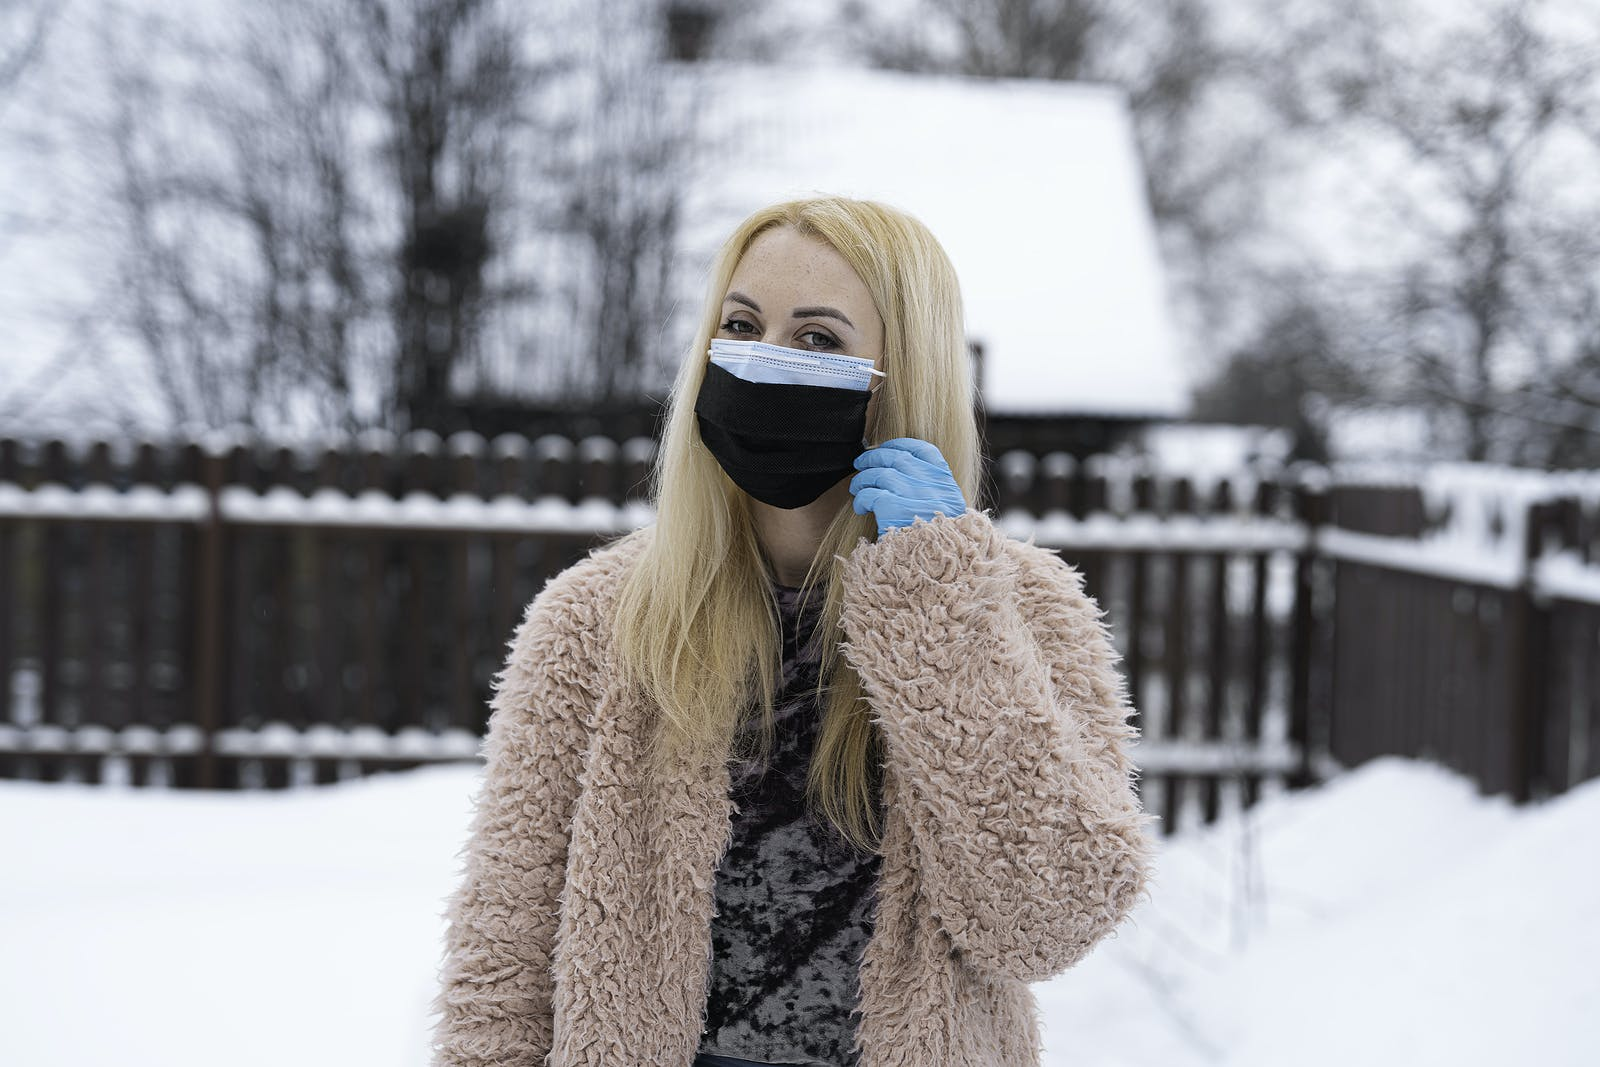 Double mask on the face. A girl in half a turn, with two masks on her face and a blue medical glove on her left hand, in the winter on the street